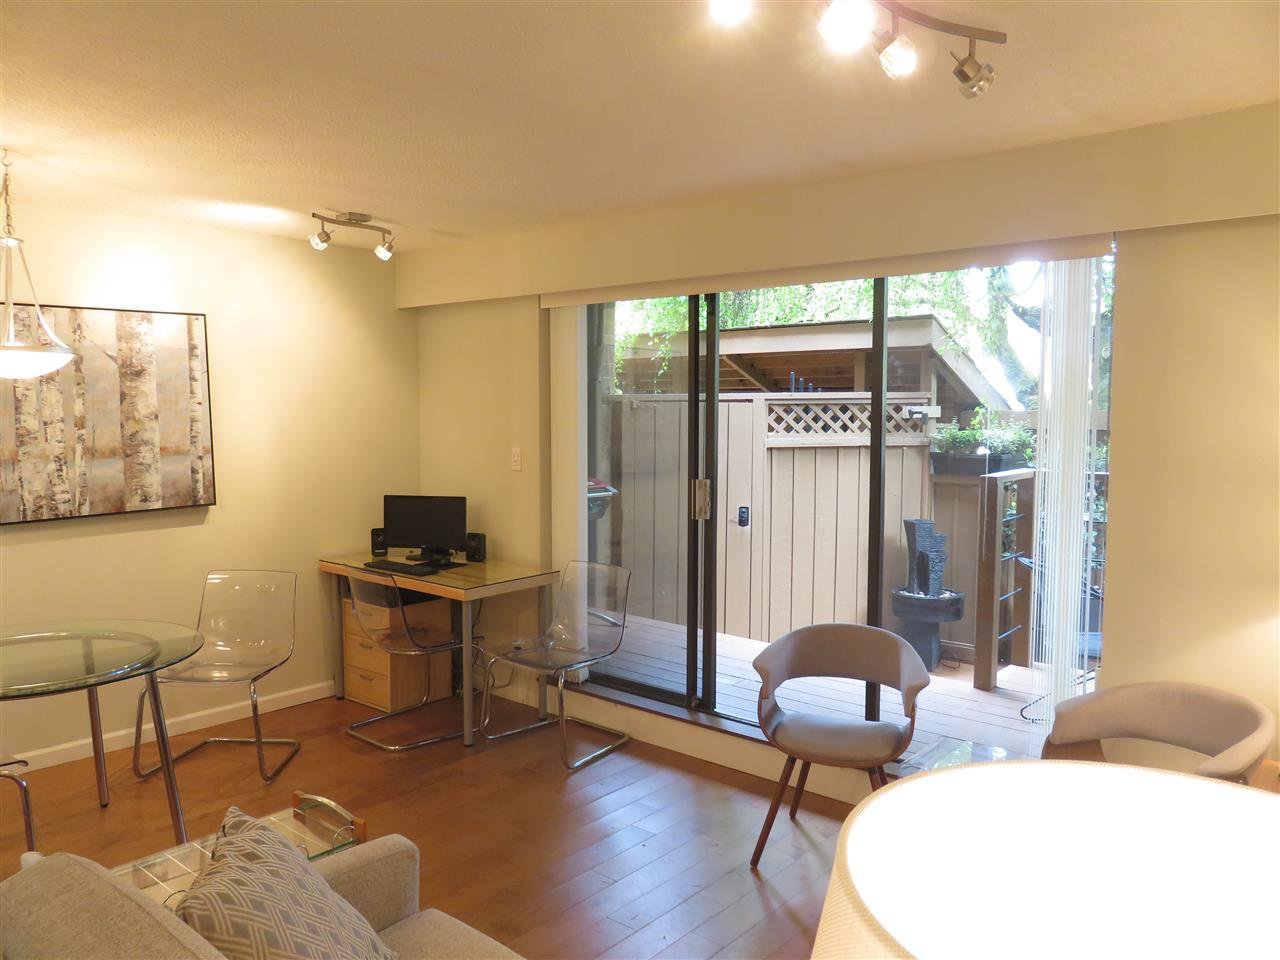 """Photo 4: Photos: 101 1930 W 3RD Avenue in Vancouver: Kitsilano Condo for sale in """"WESTVIEW"""" (Vancouver West)  : MLS®# R2169188"""